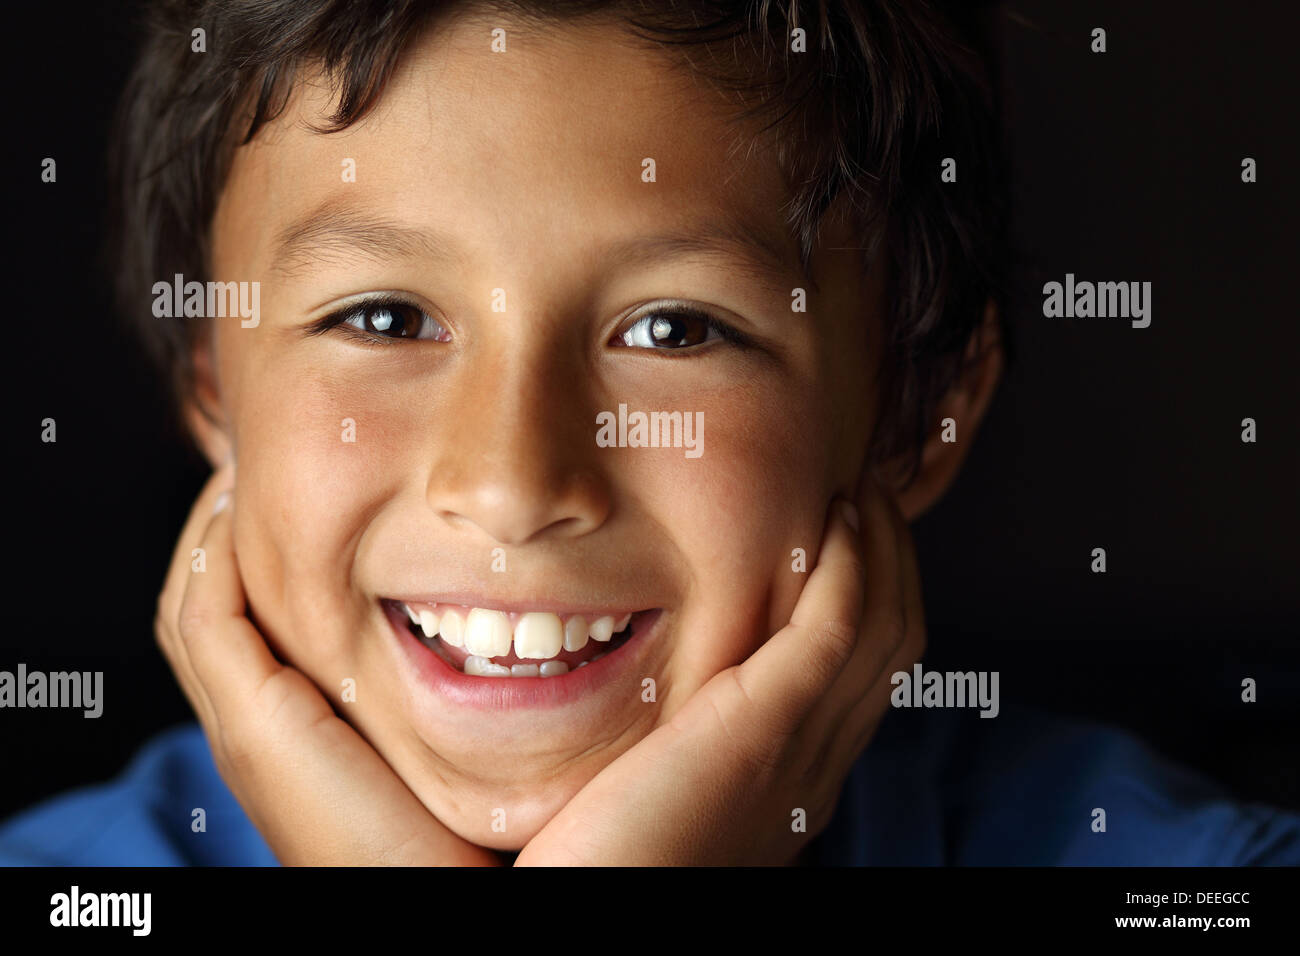 Portrait of young school boy with chiaroscuro lighting - shallow depth of field - Stock Image